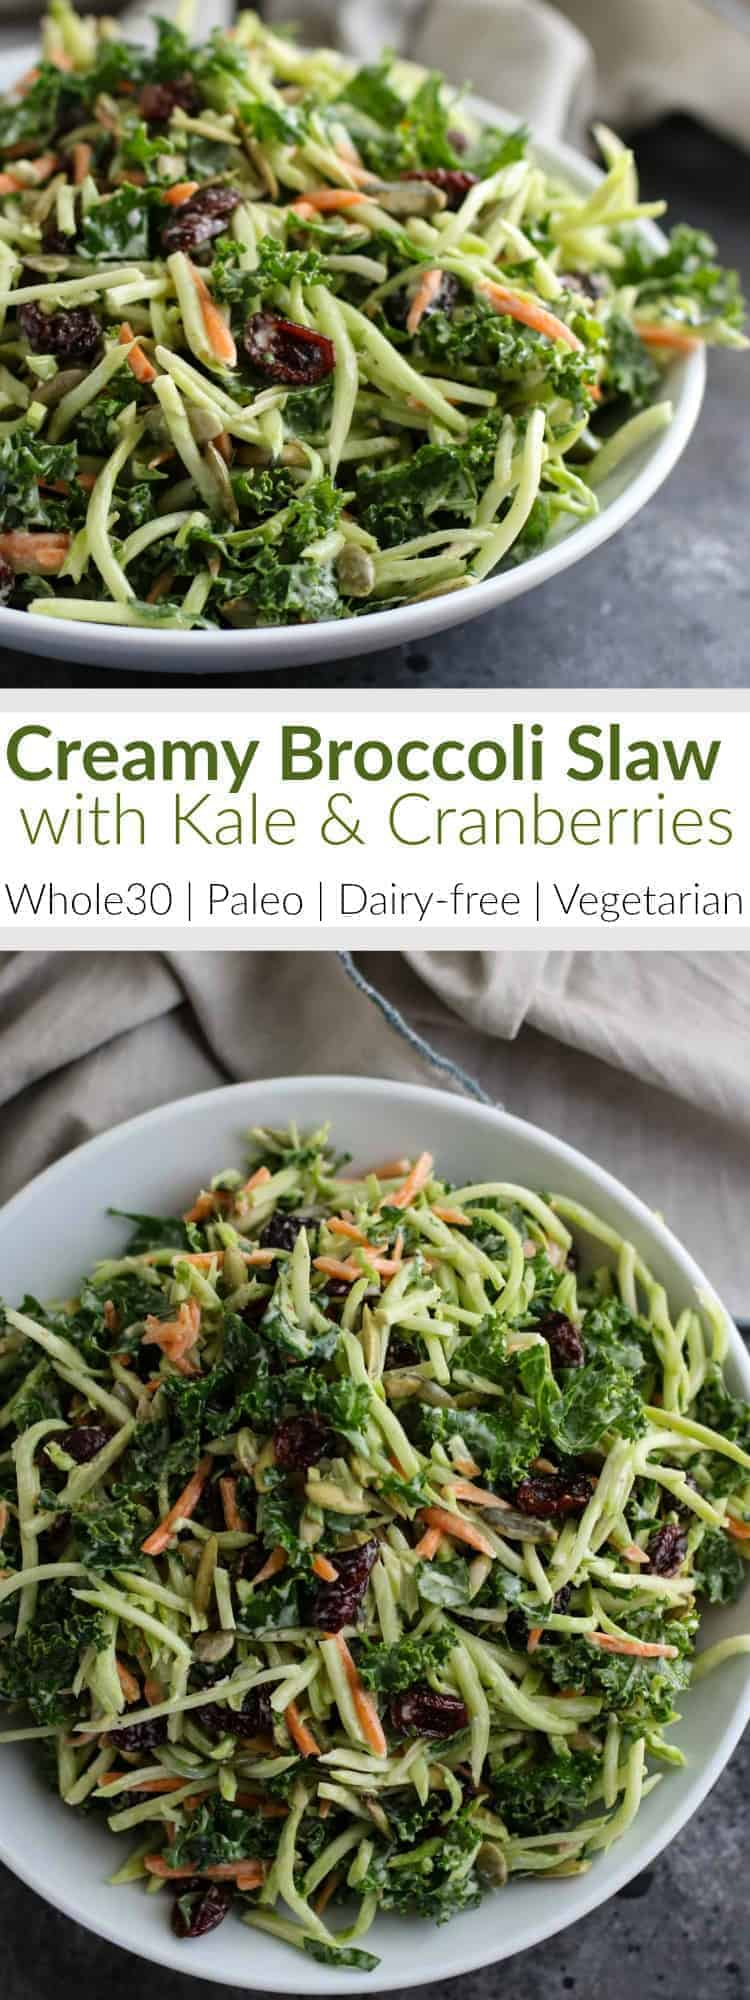 Pinterest image for Creamy Broccoli Slaw